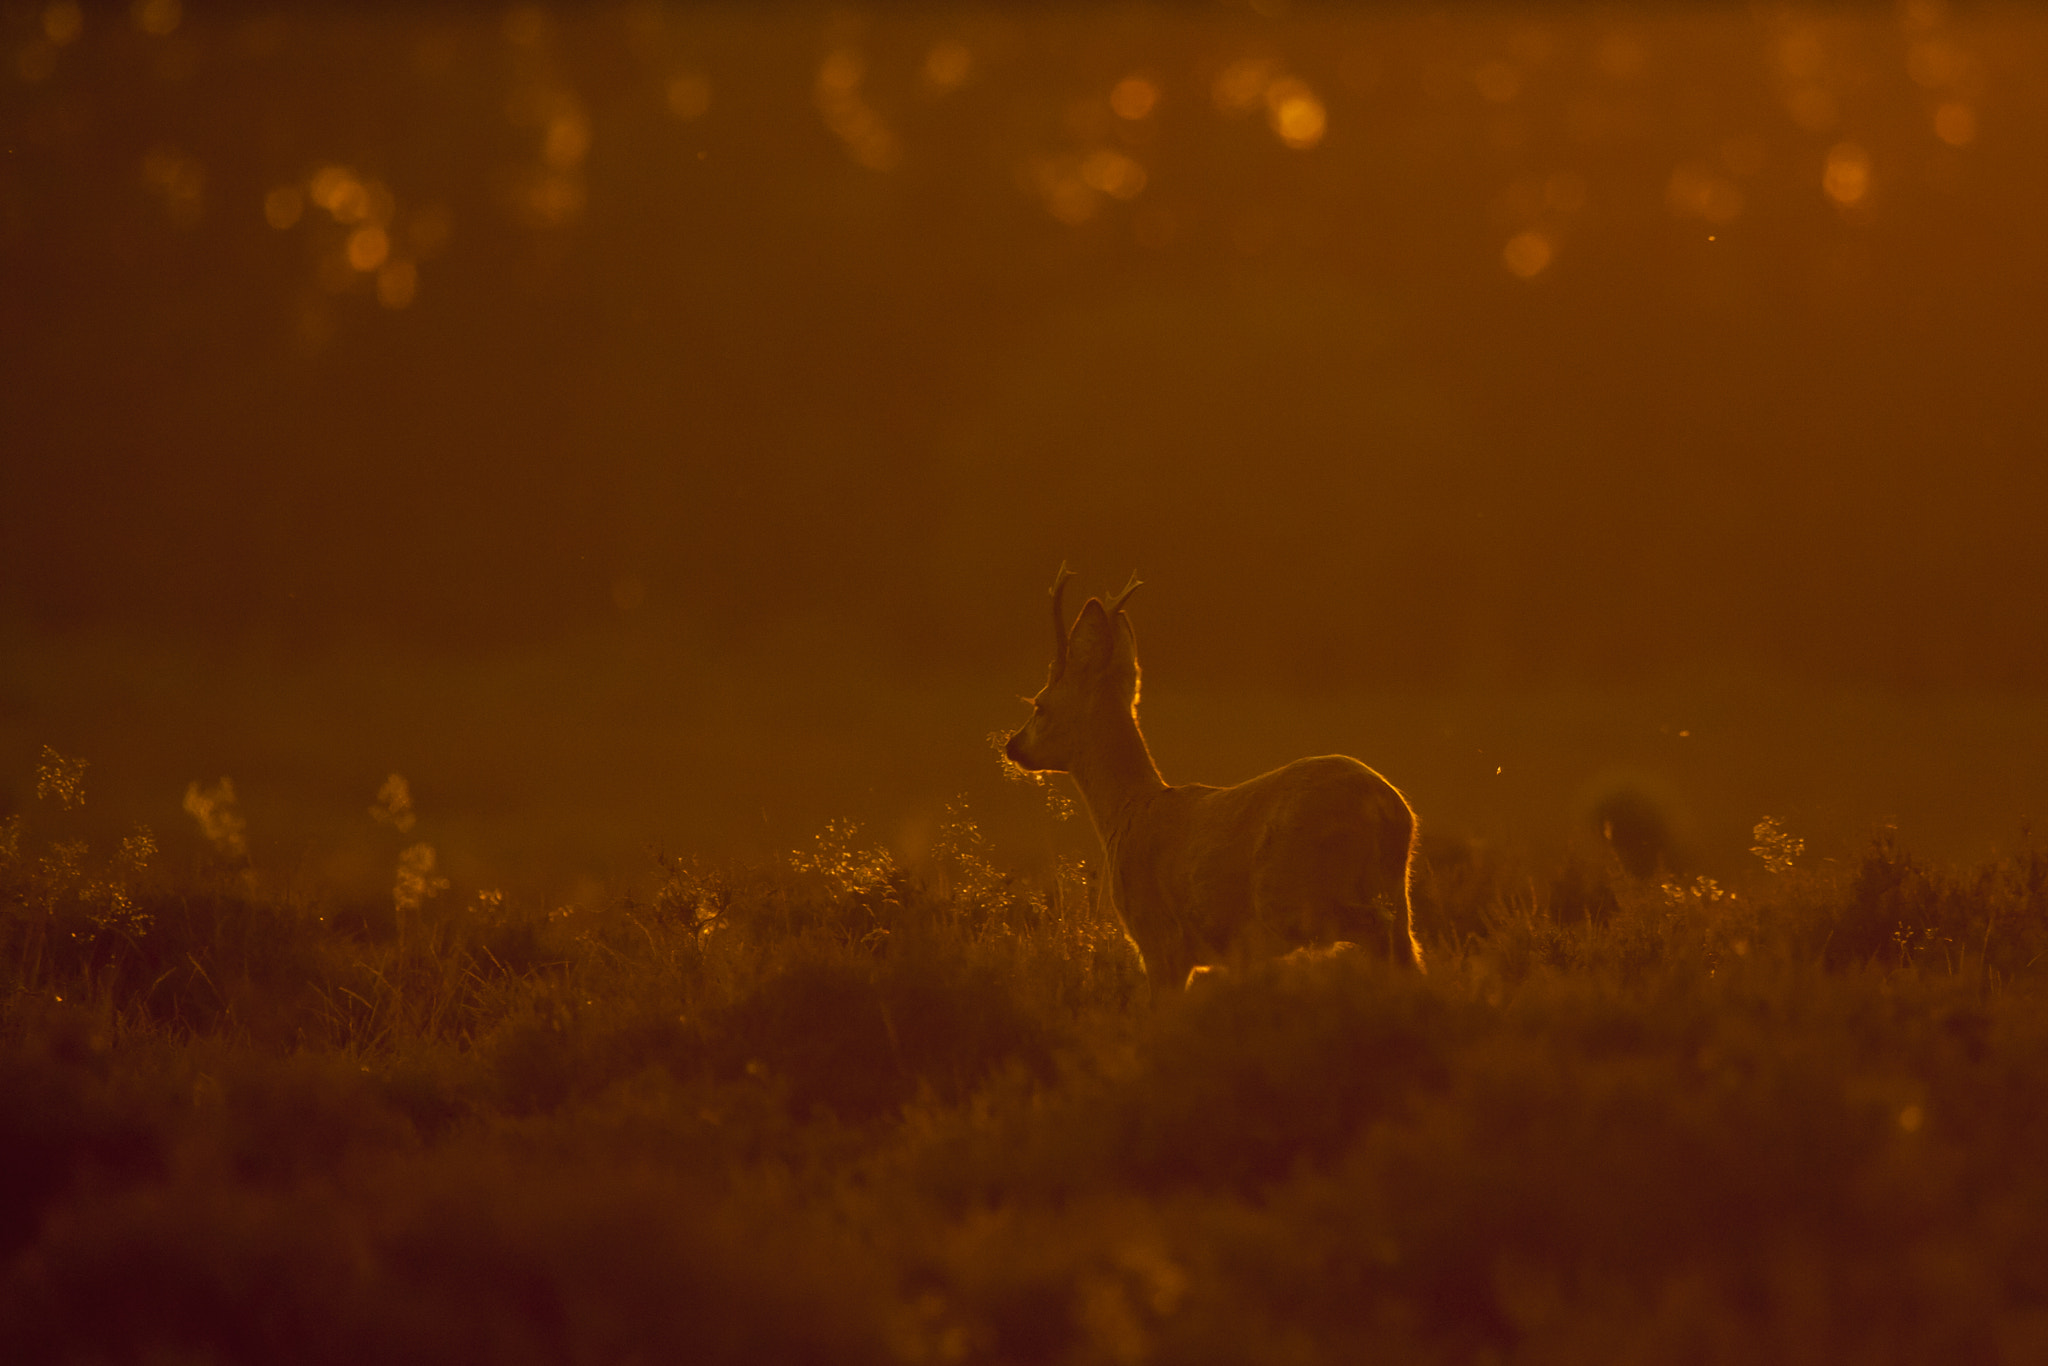 Photograph Roe deer at sunset by Gijs de Kruijf on 500px